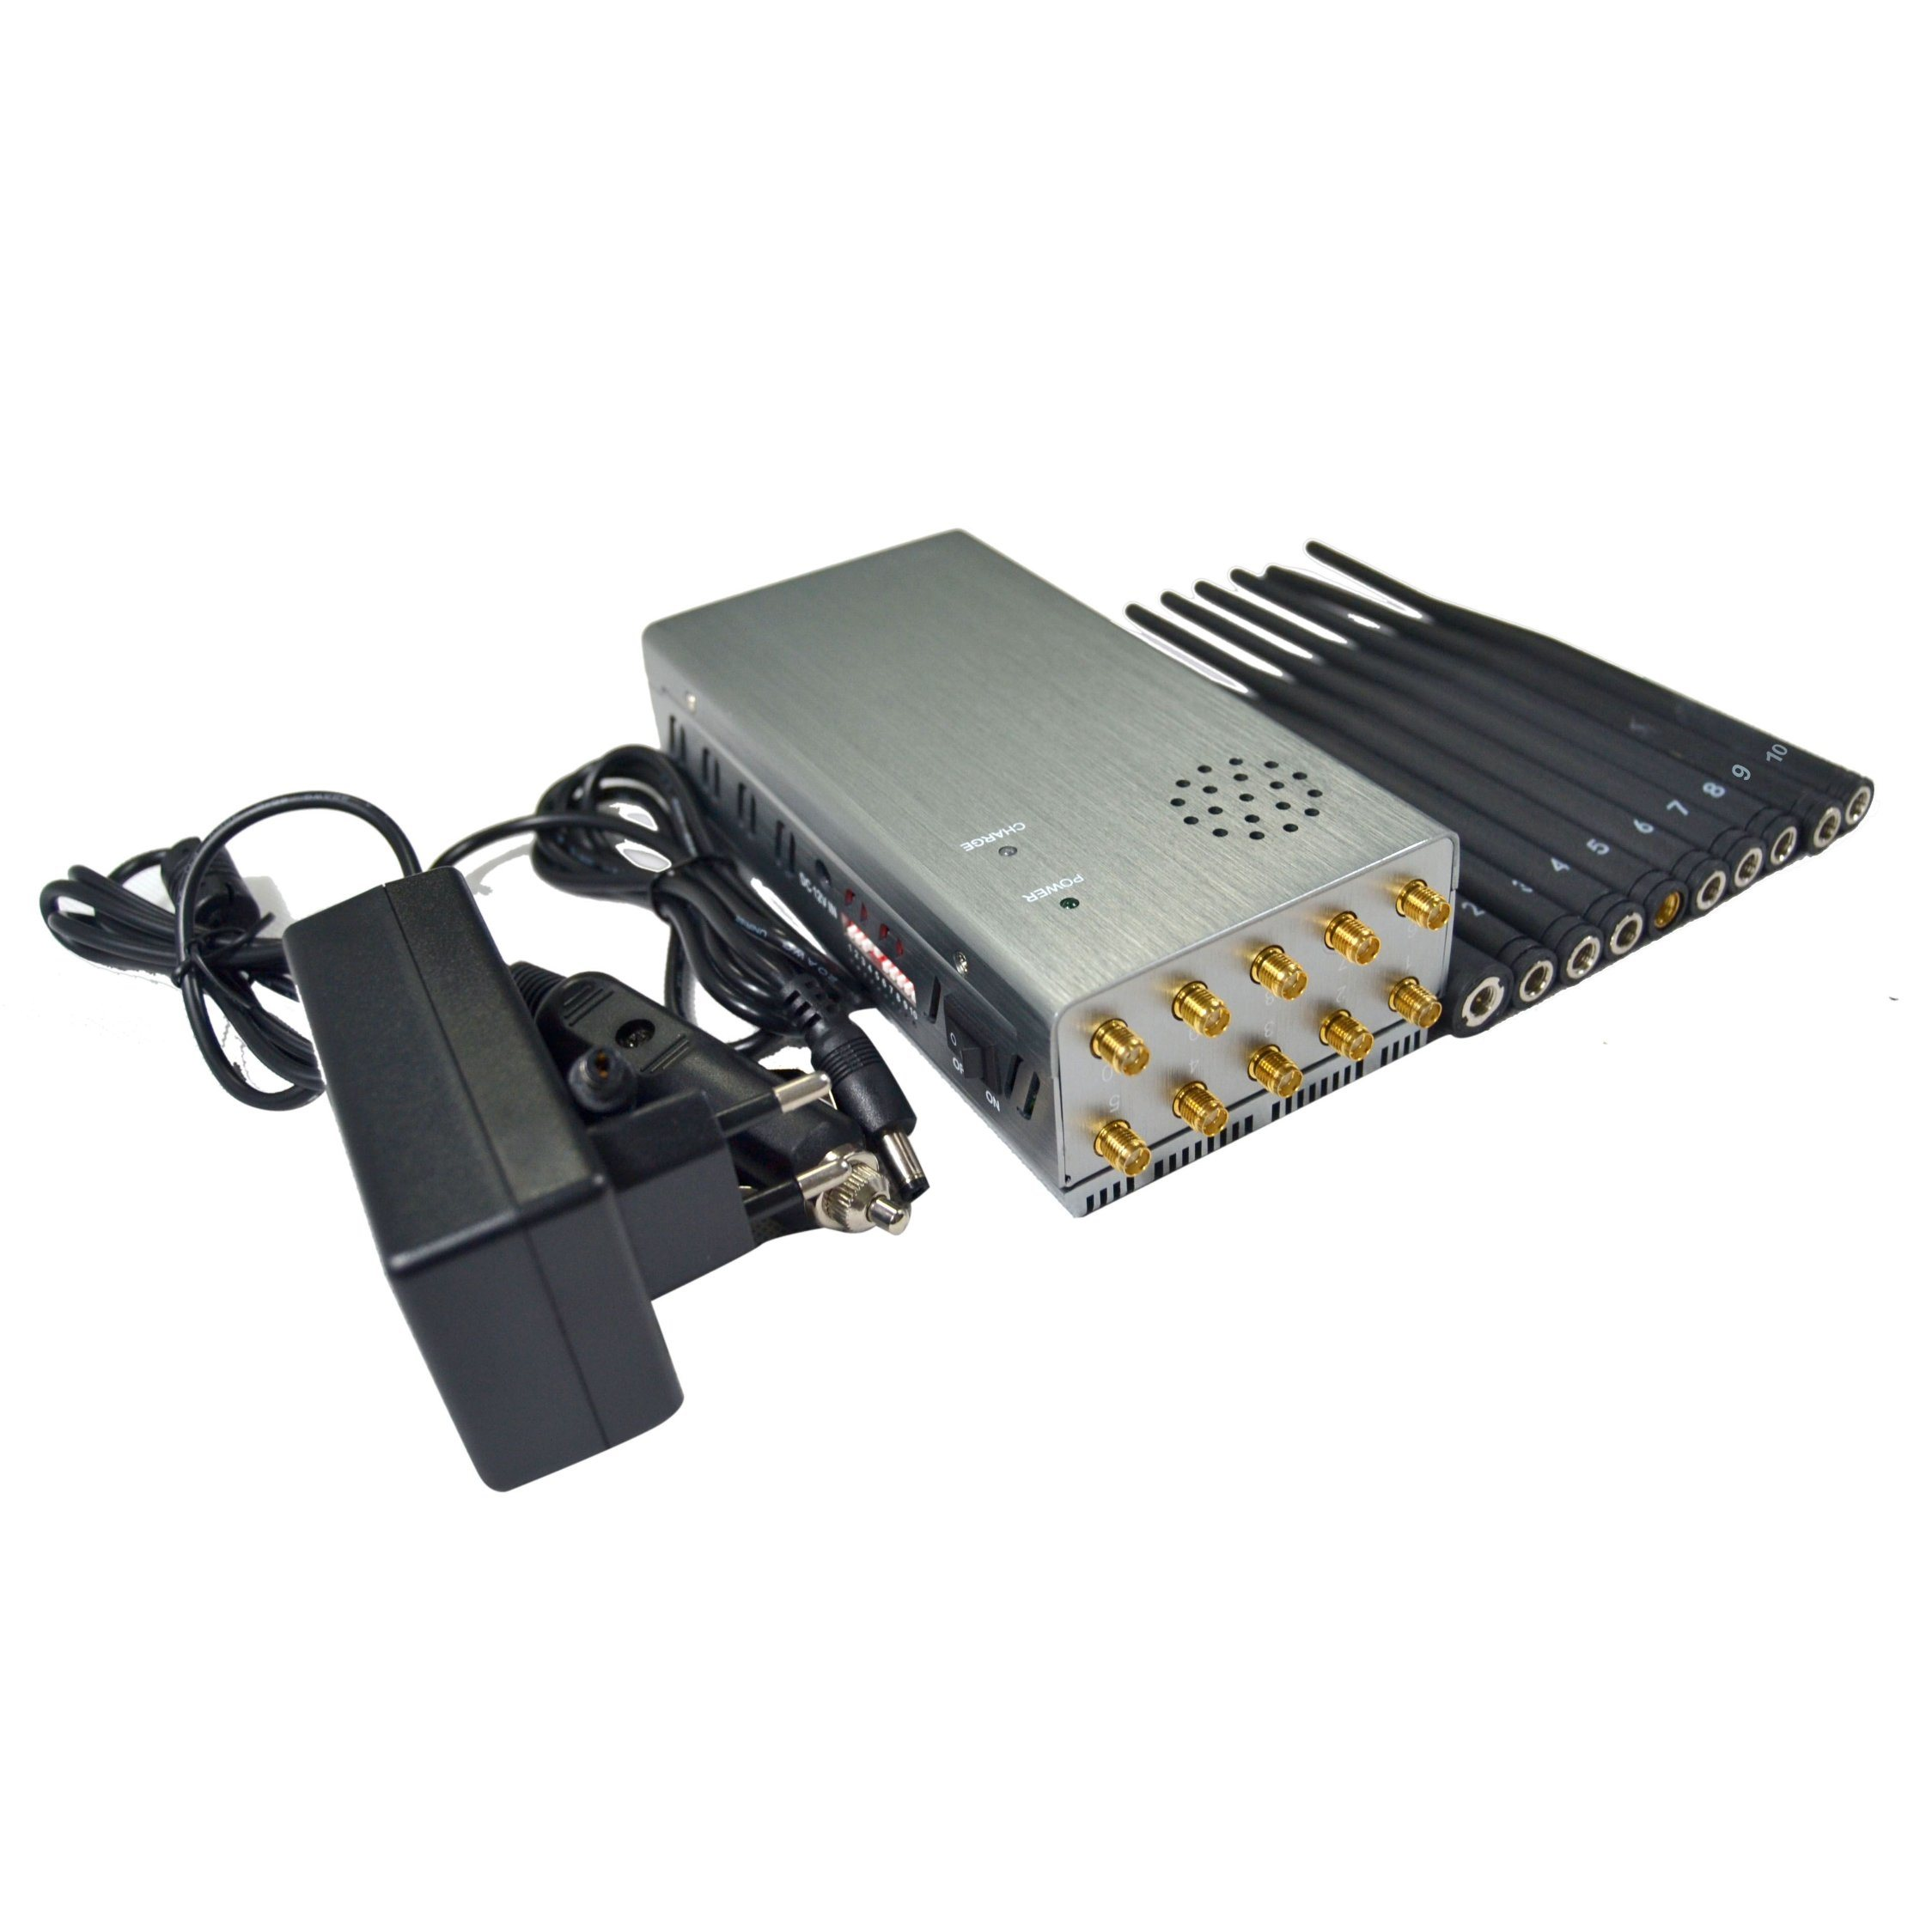 mobile jammer online jigsaw - China Lojack 2g 3G 4G 5g GPS 433MHz315MHz868MHz Full Band up to 10 Antennas Signal Blocker - China 8000mA Battery Jammer, Large Volume Power Signal Blocker